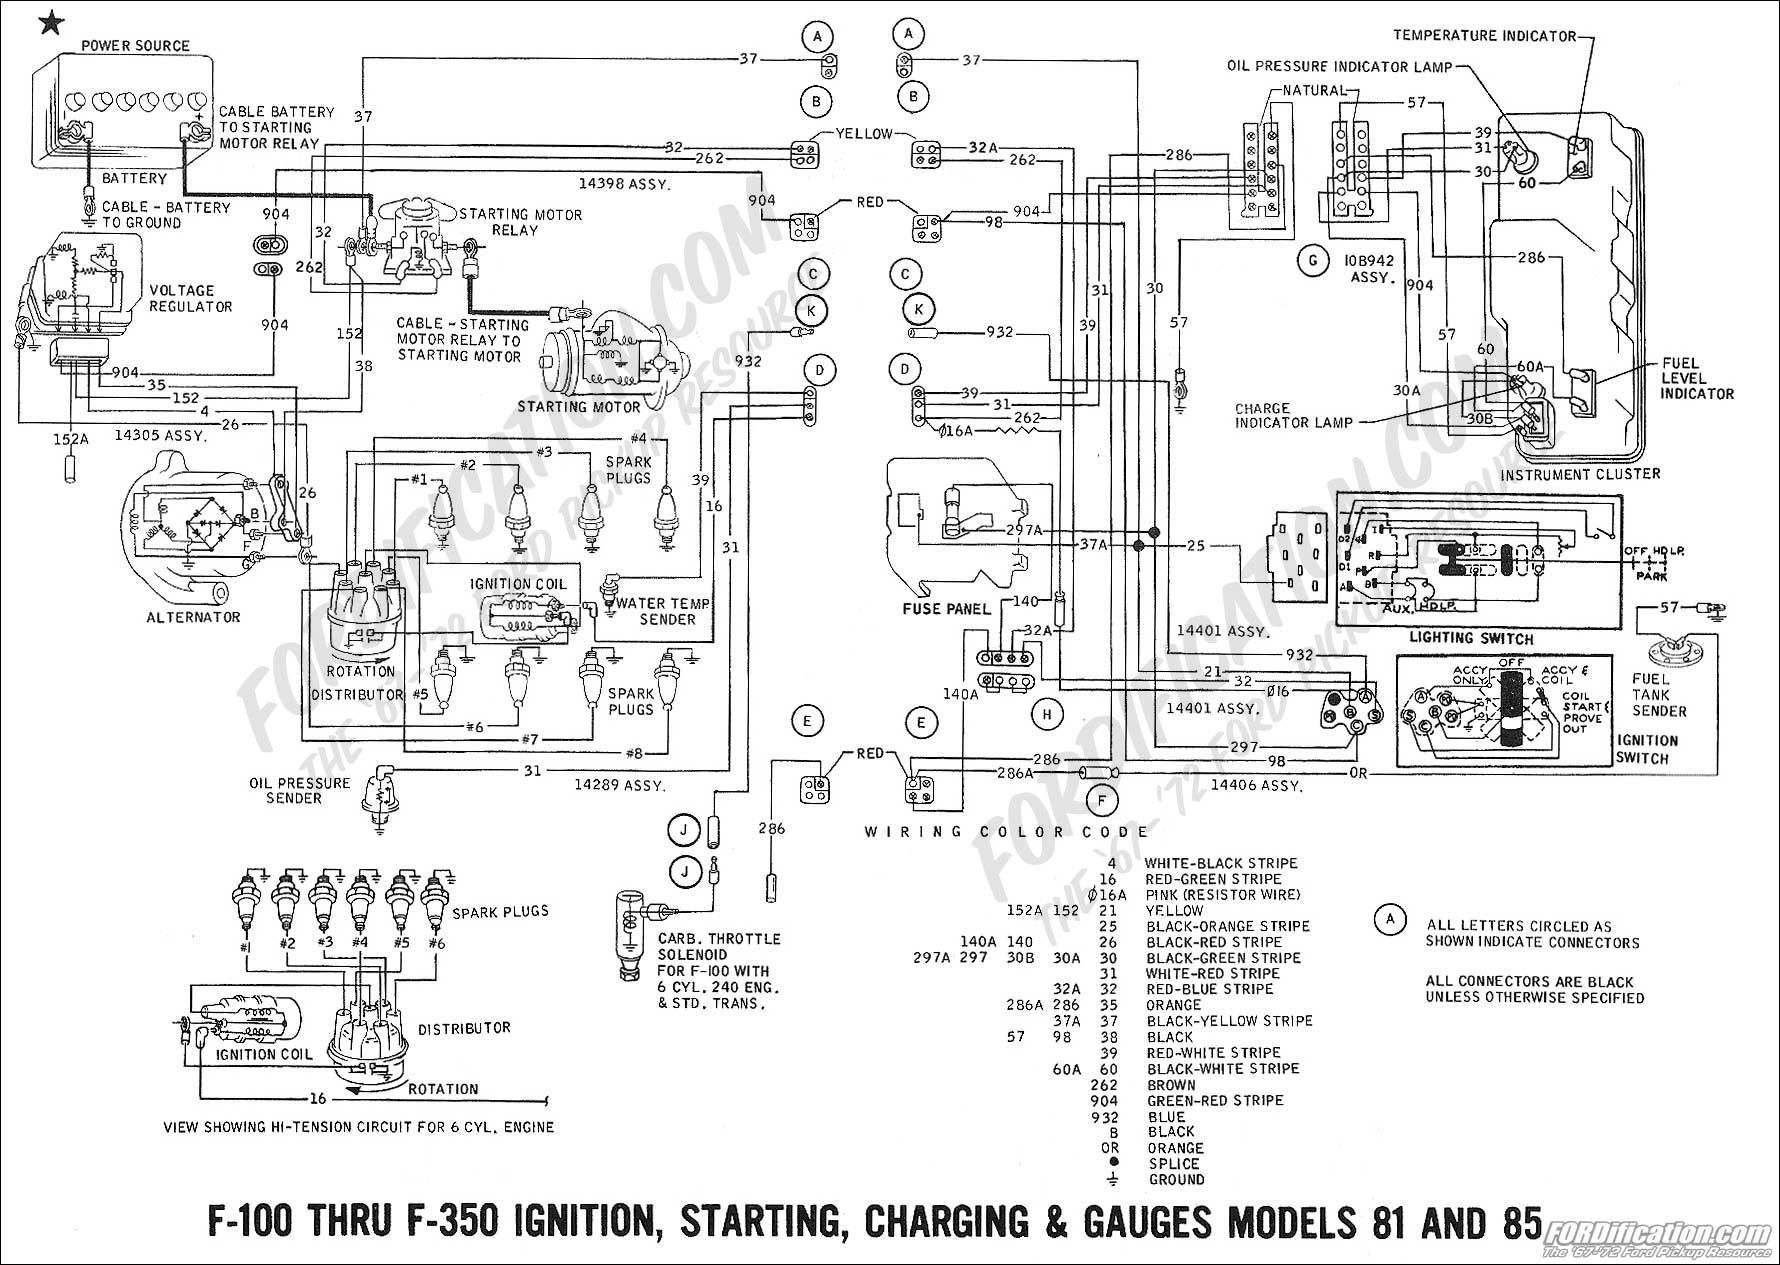 hight resolution of 73 ford wiring diagram wiring diagram expert73 ford f250 wiring wiring diagram used 73 ford bronco